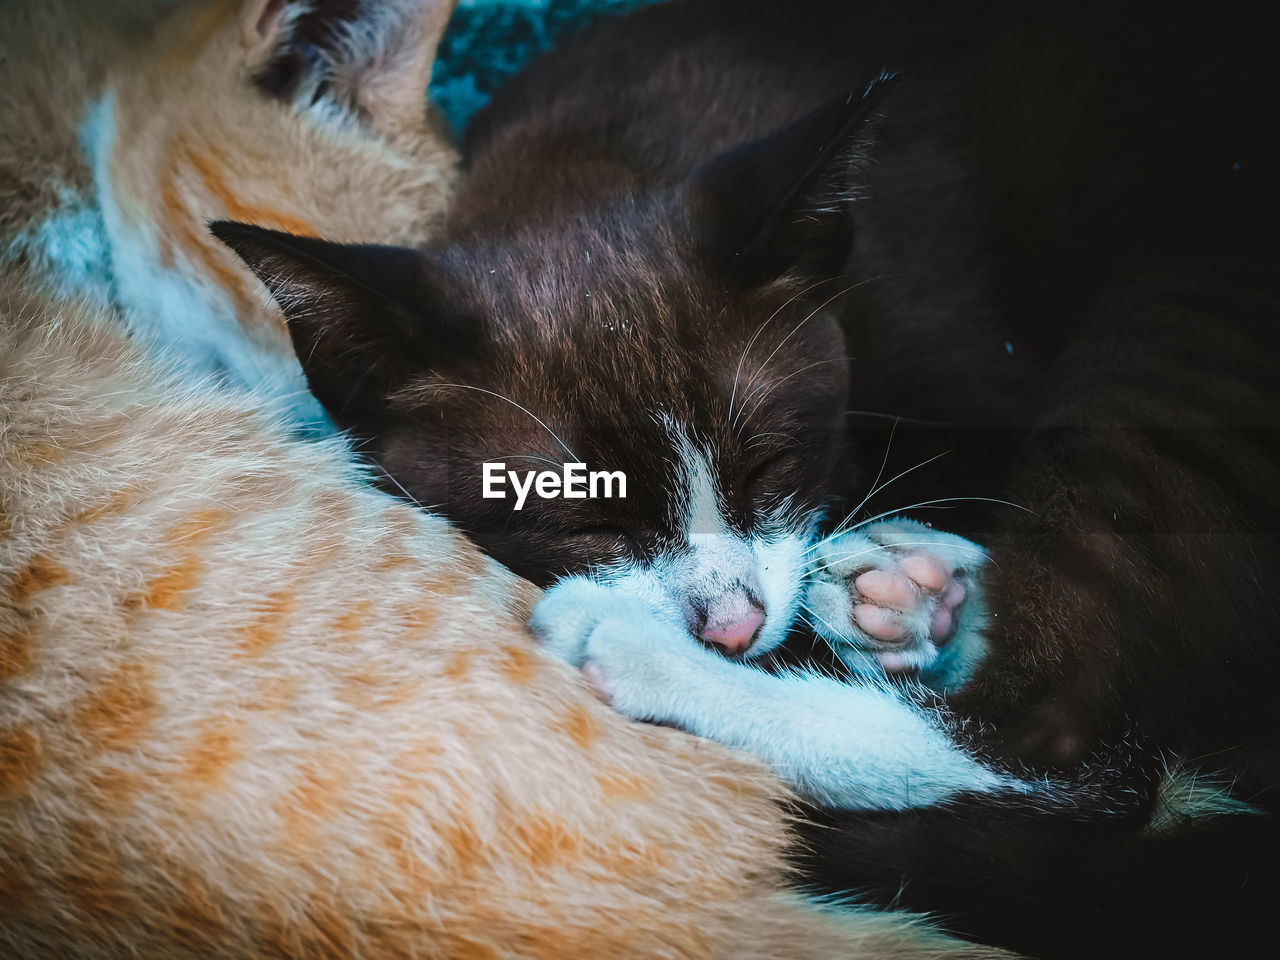 mammal, domestic, pets, domestic animals, animal themes, animal, cat, vertebrate, feline, domestic cat, one animal, relaxation, close-up, indoors, no people, sleeping, bed, lying down, whisker, kitten, animal head, animal family, care